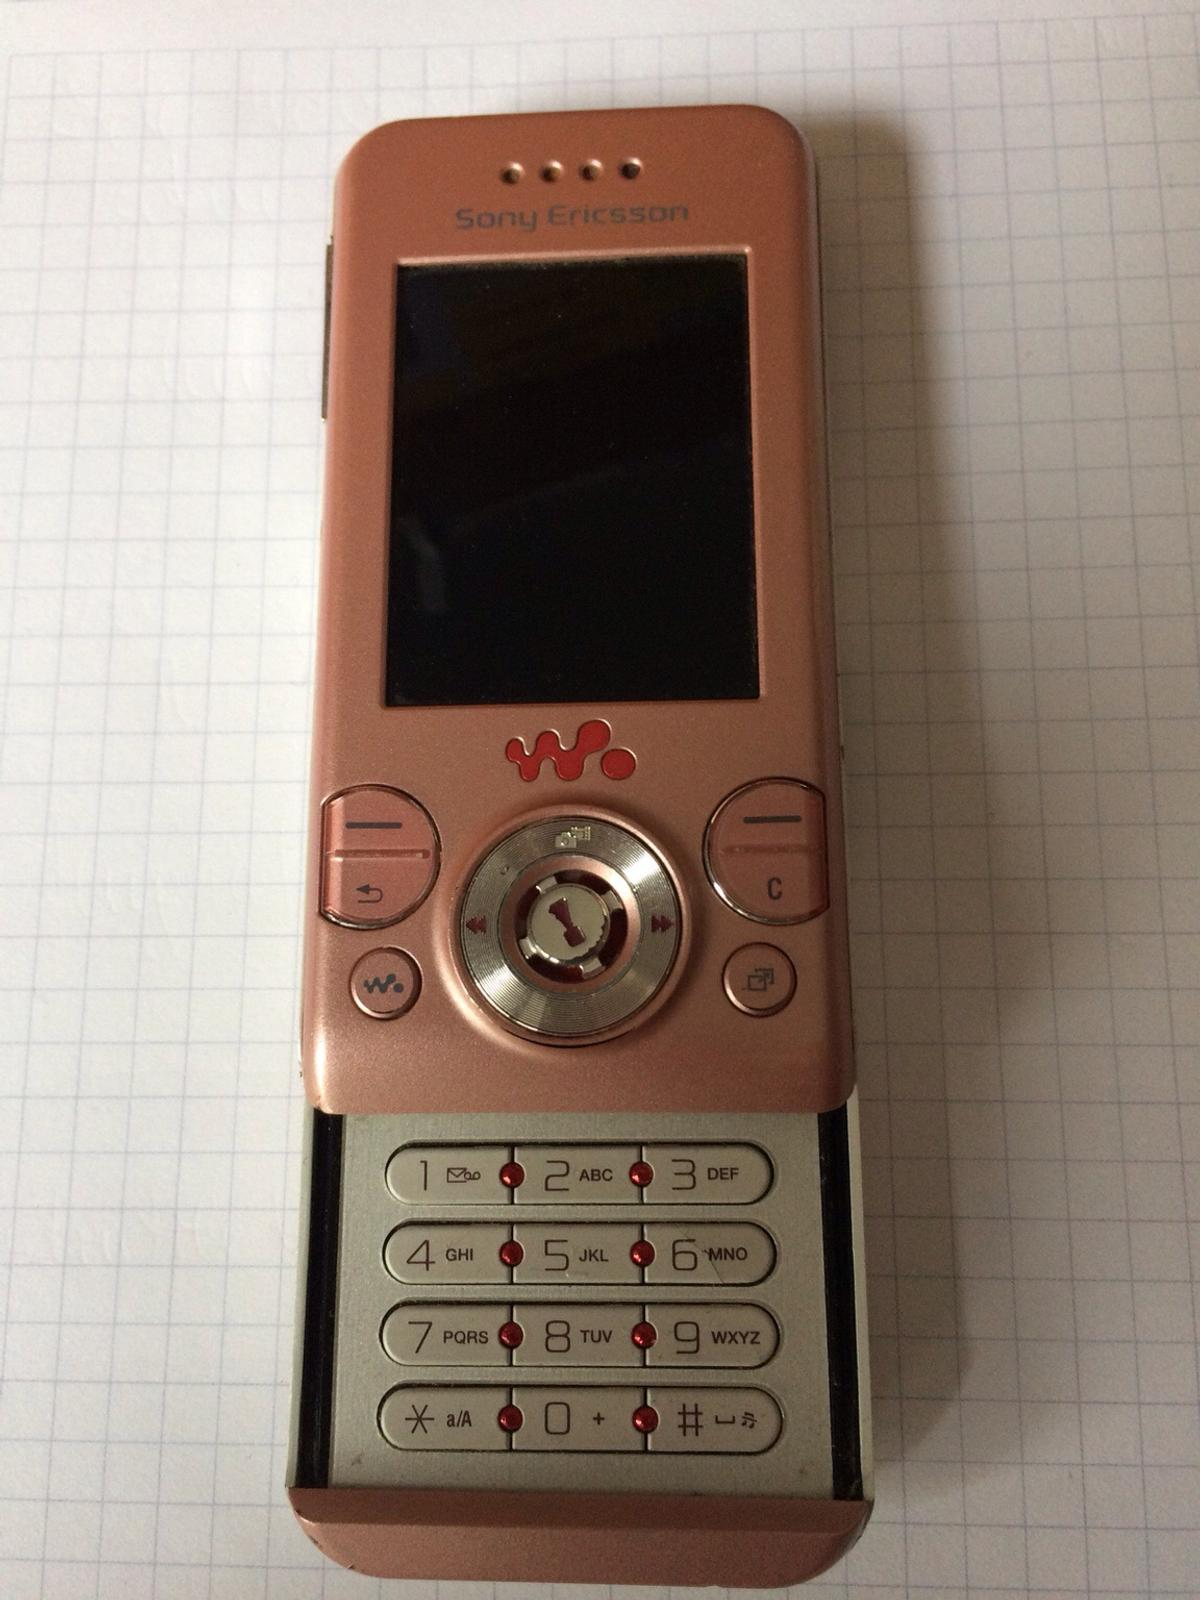 Sony Ericson Altes Handy In Rosa In 67661 Hohenecken For 10 00 For Sale Shpock